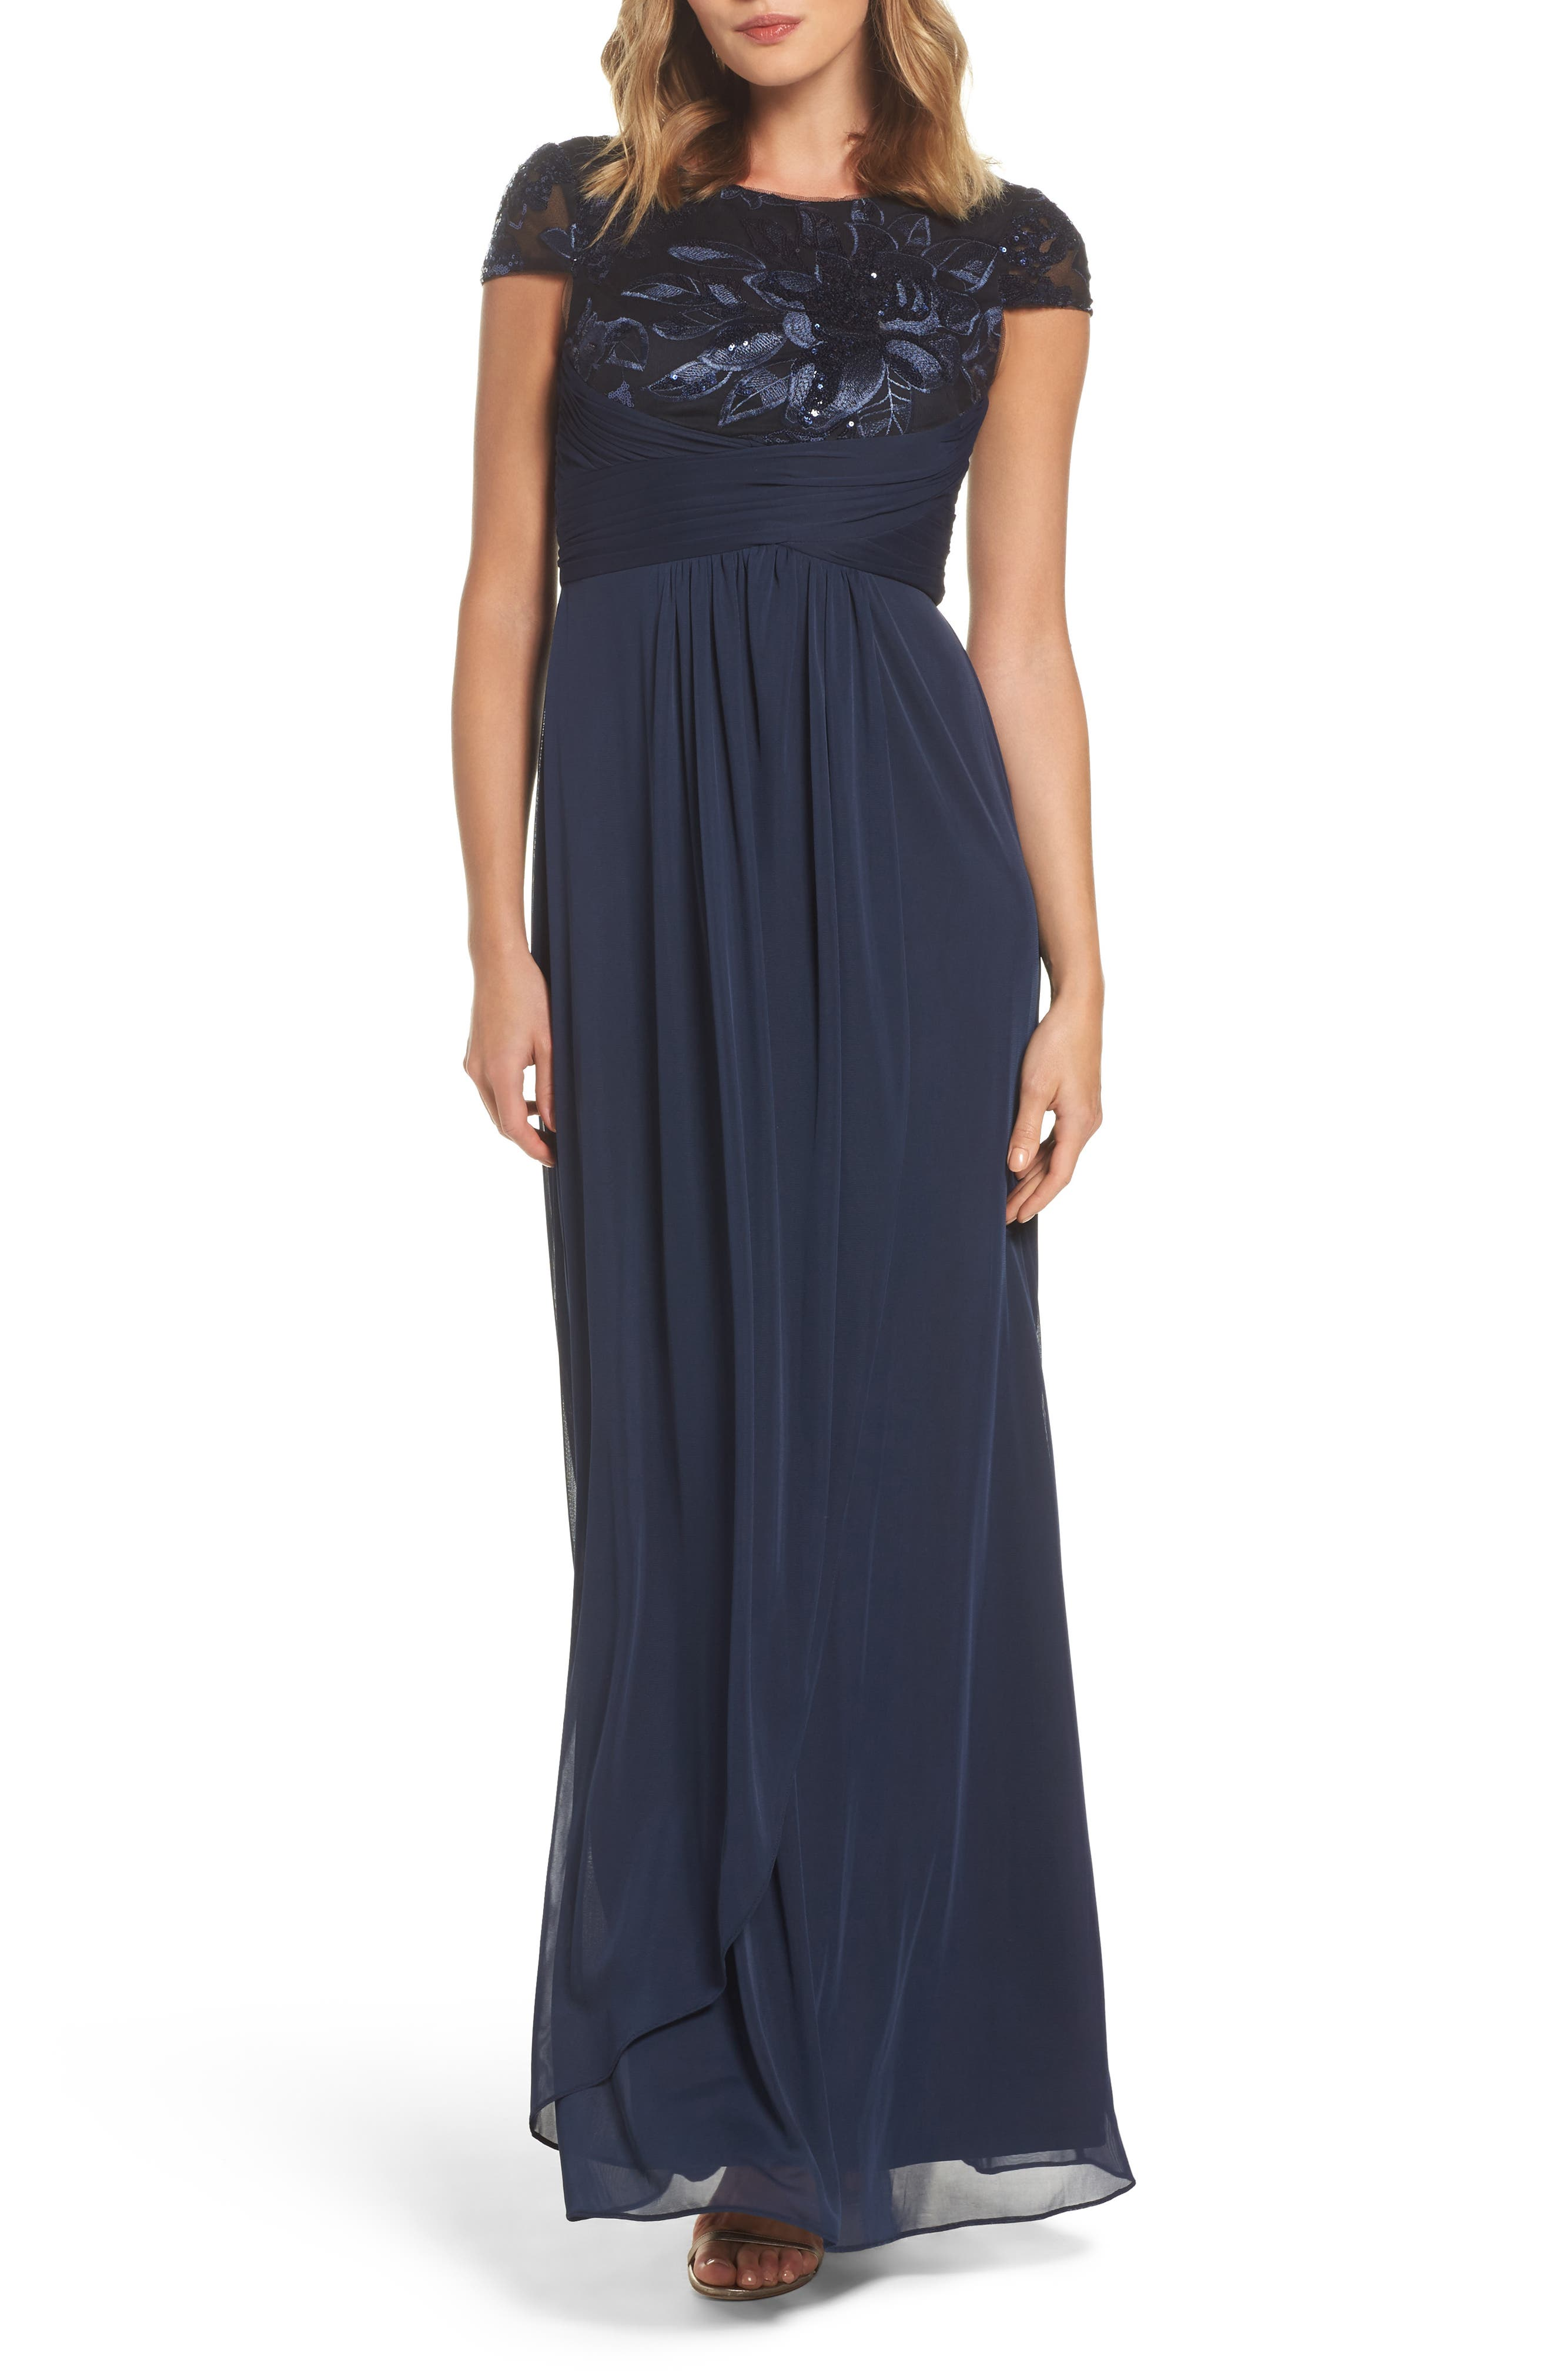 Alternate Image 1 Selected - Adrianna Papell Embellished Gown